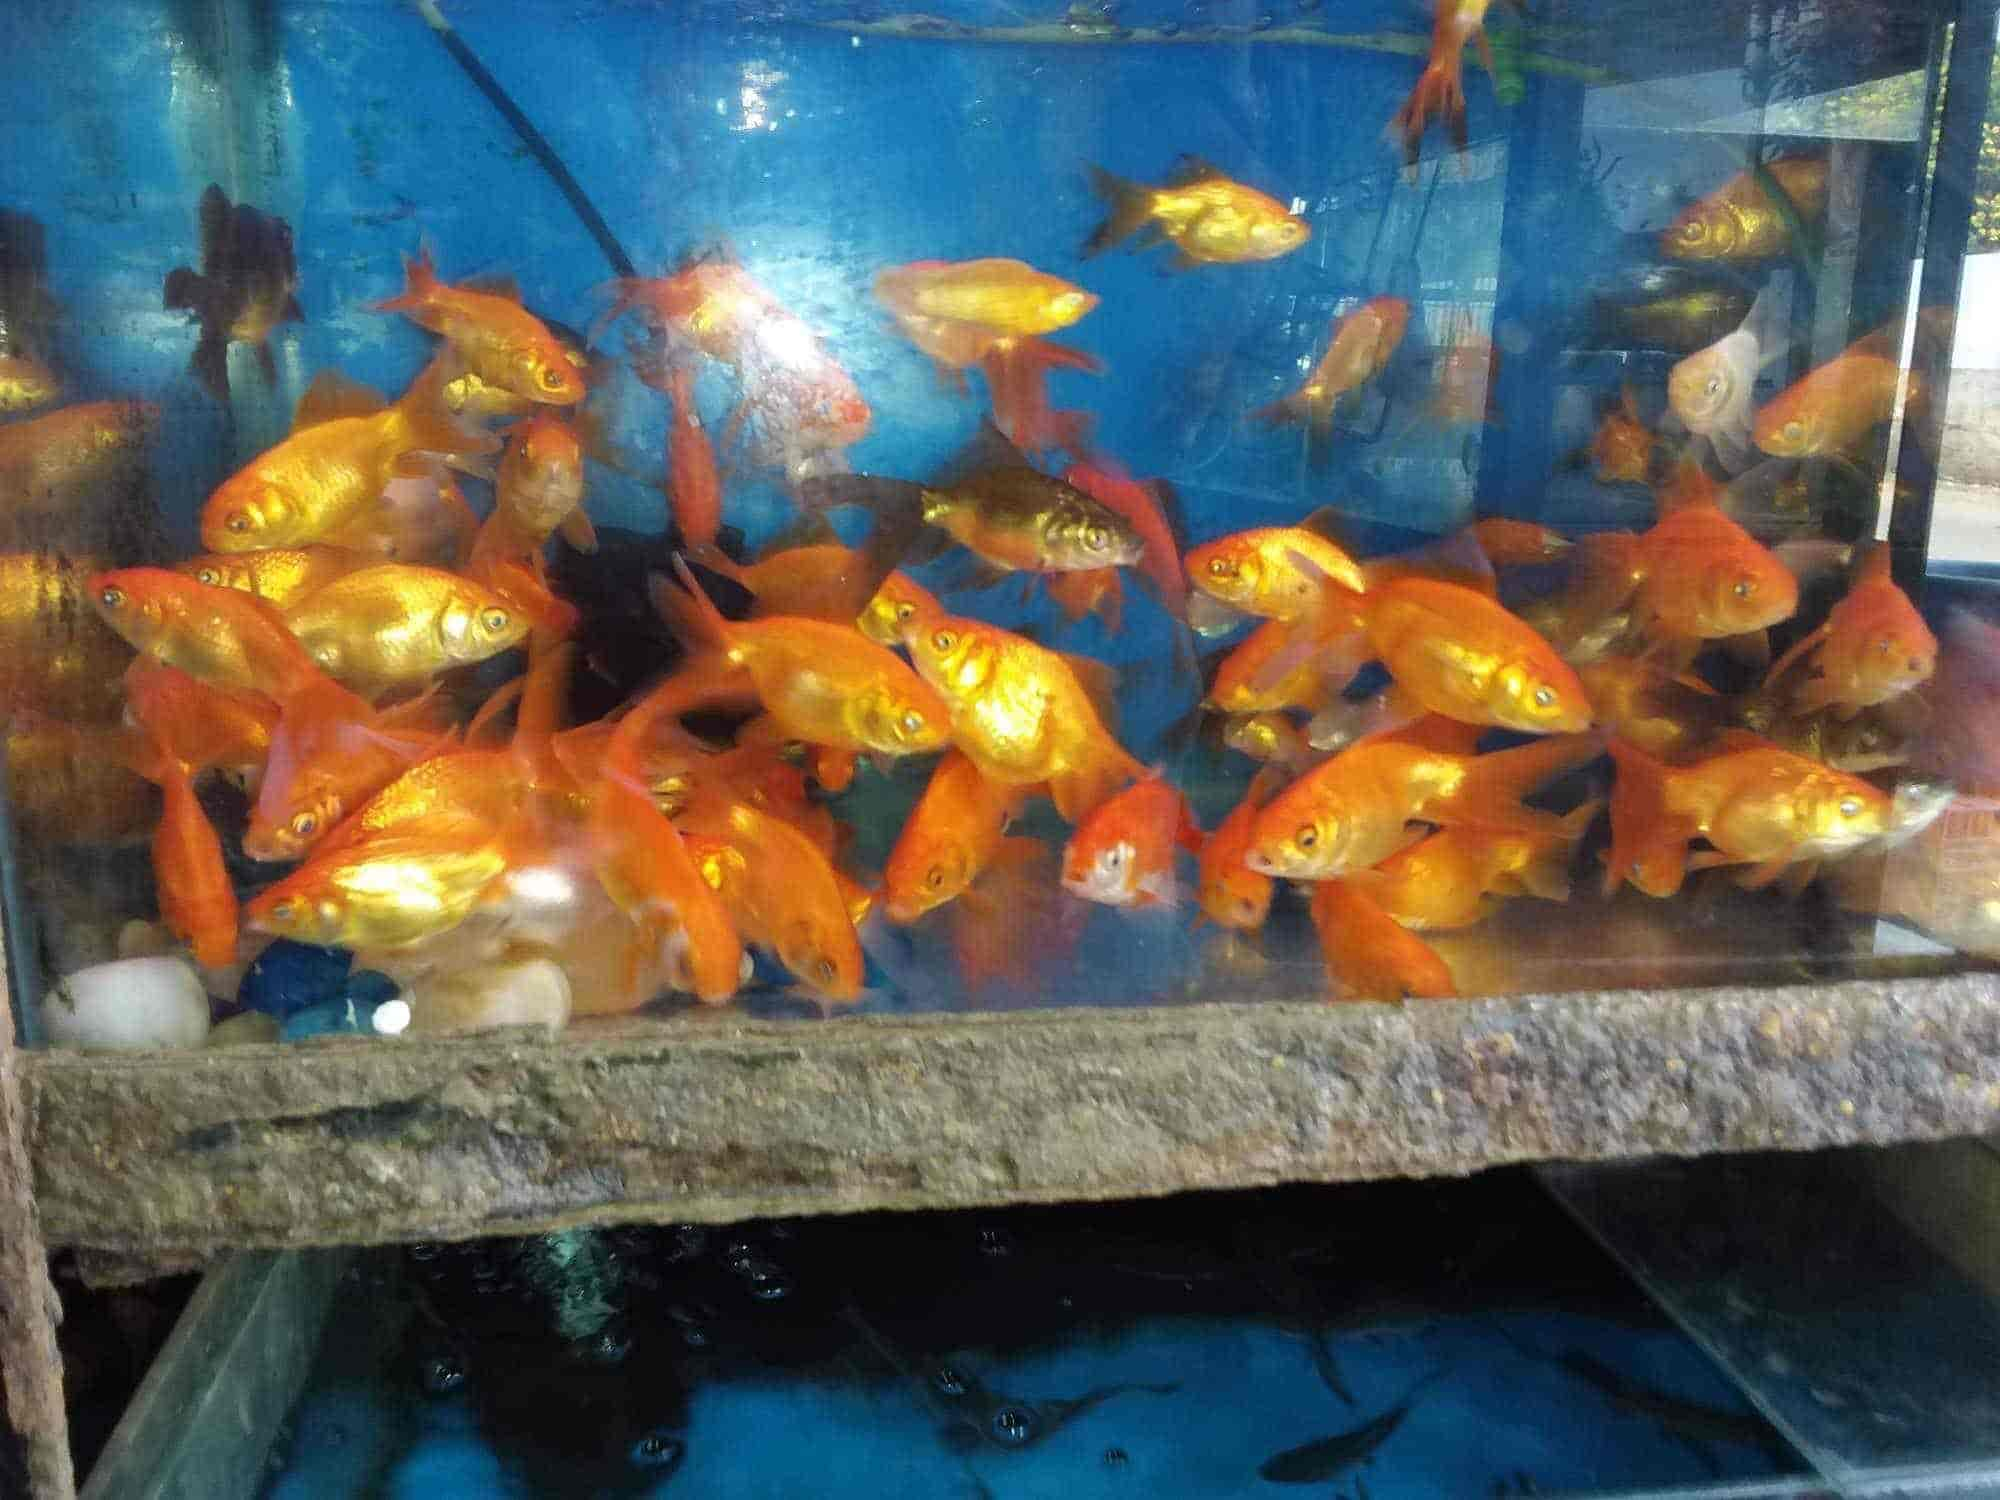 Tropical Nature Aquarium Shivaji Road Aquariums in Belgaum Justdial